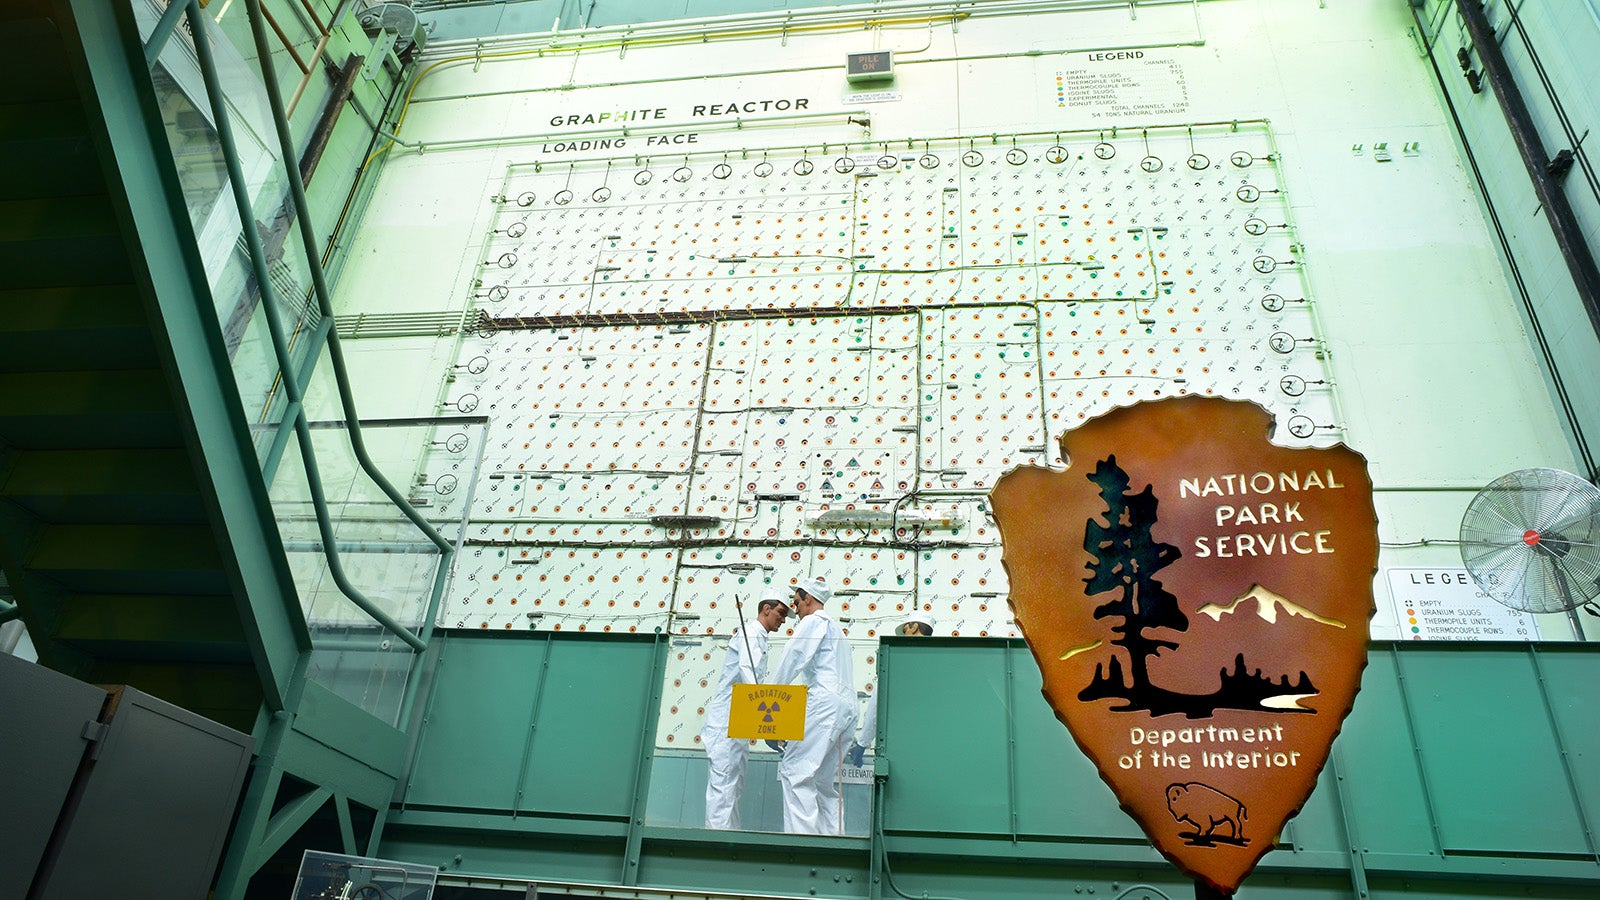 Why Does This Nuclear Reactor Have a National Park Sign?